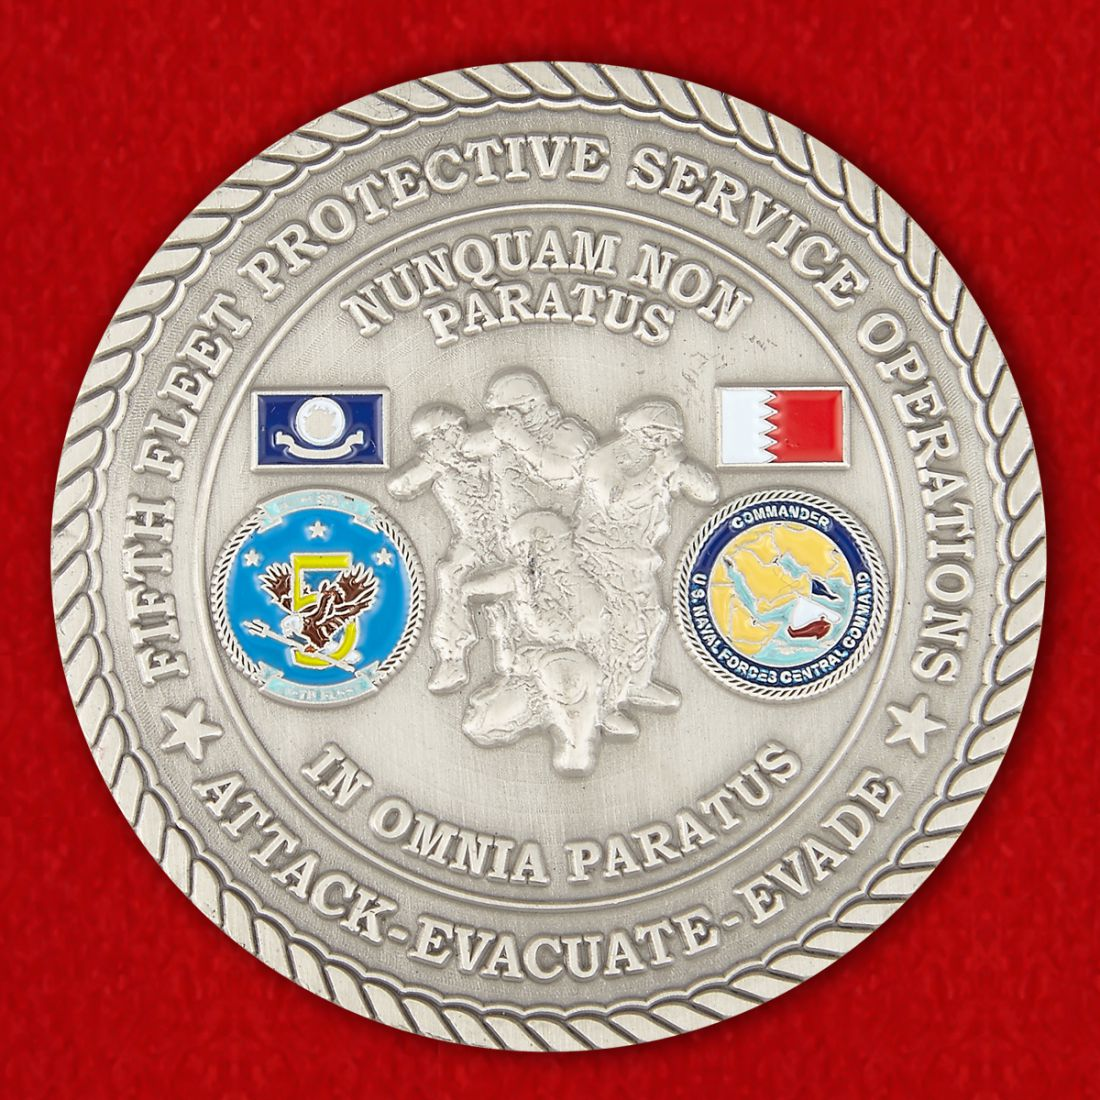 Special Agent of the US Navy Challenge Coin